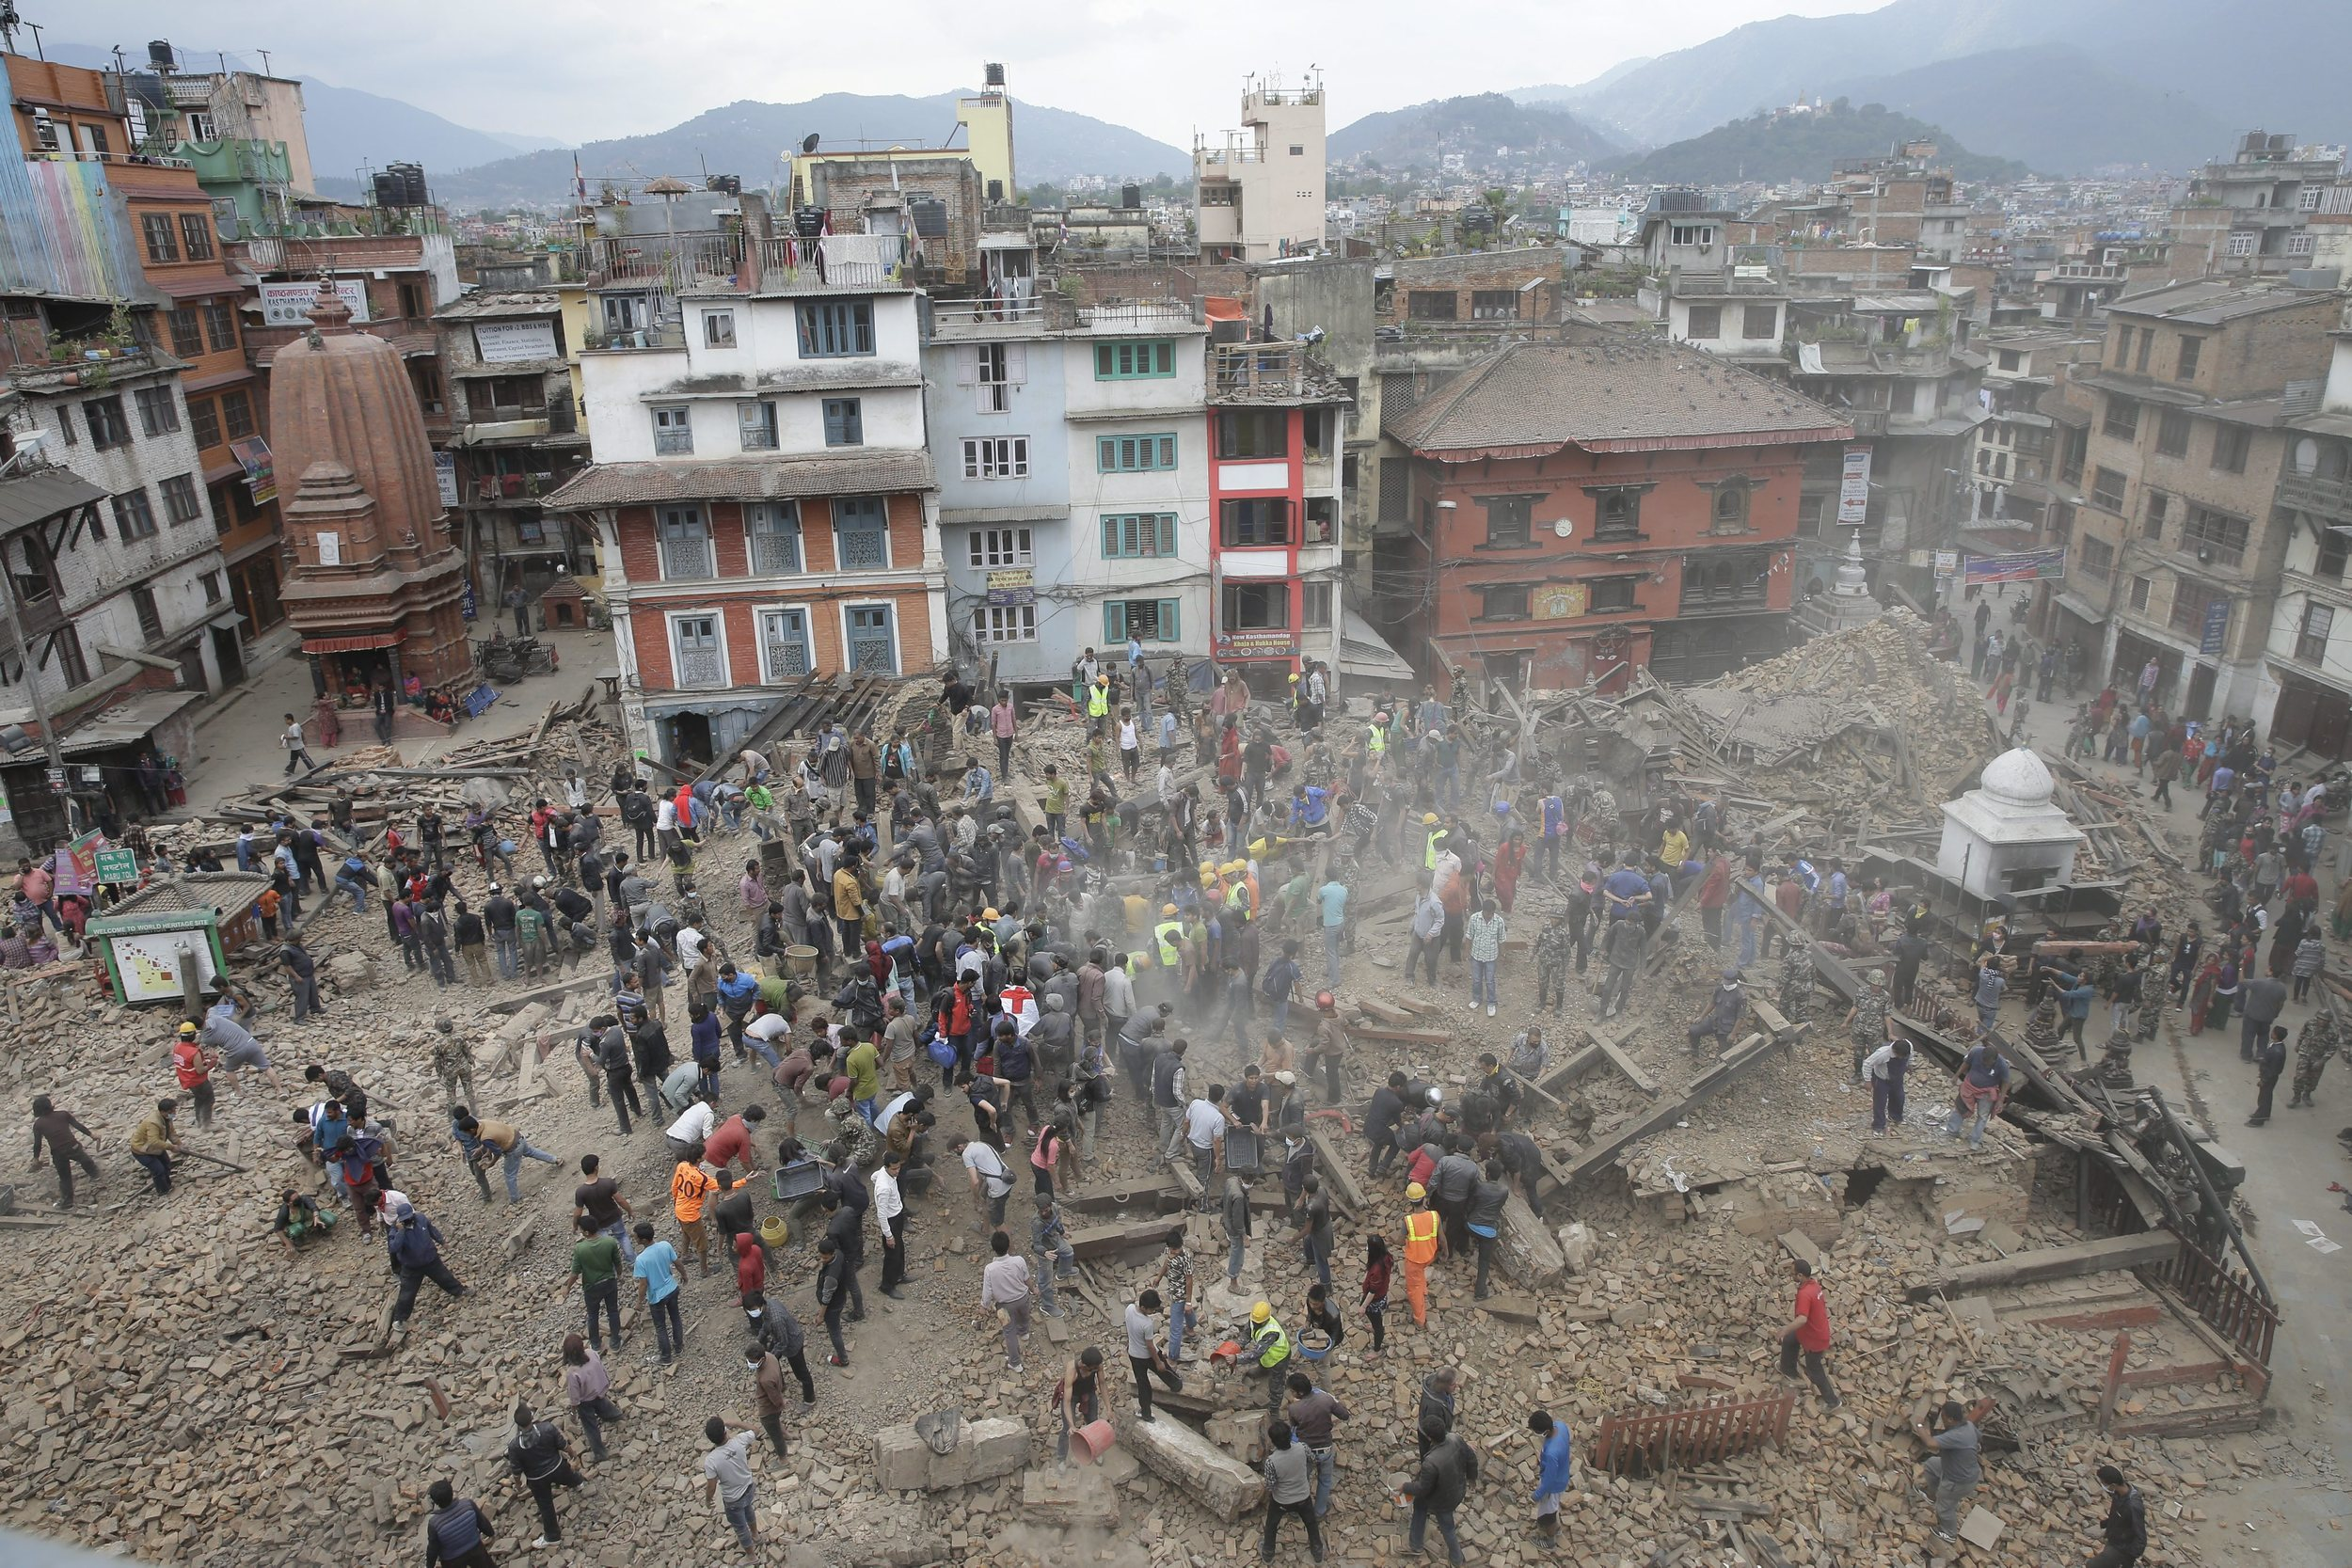 People search for survivors under the rubble of collapsed buuildings in Kathmandu's Durbar Squae.     (Photo: Narendra Shrestha, European Pressphoto Agency)